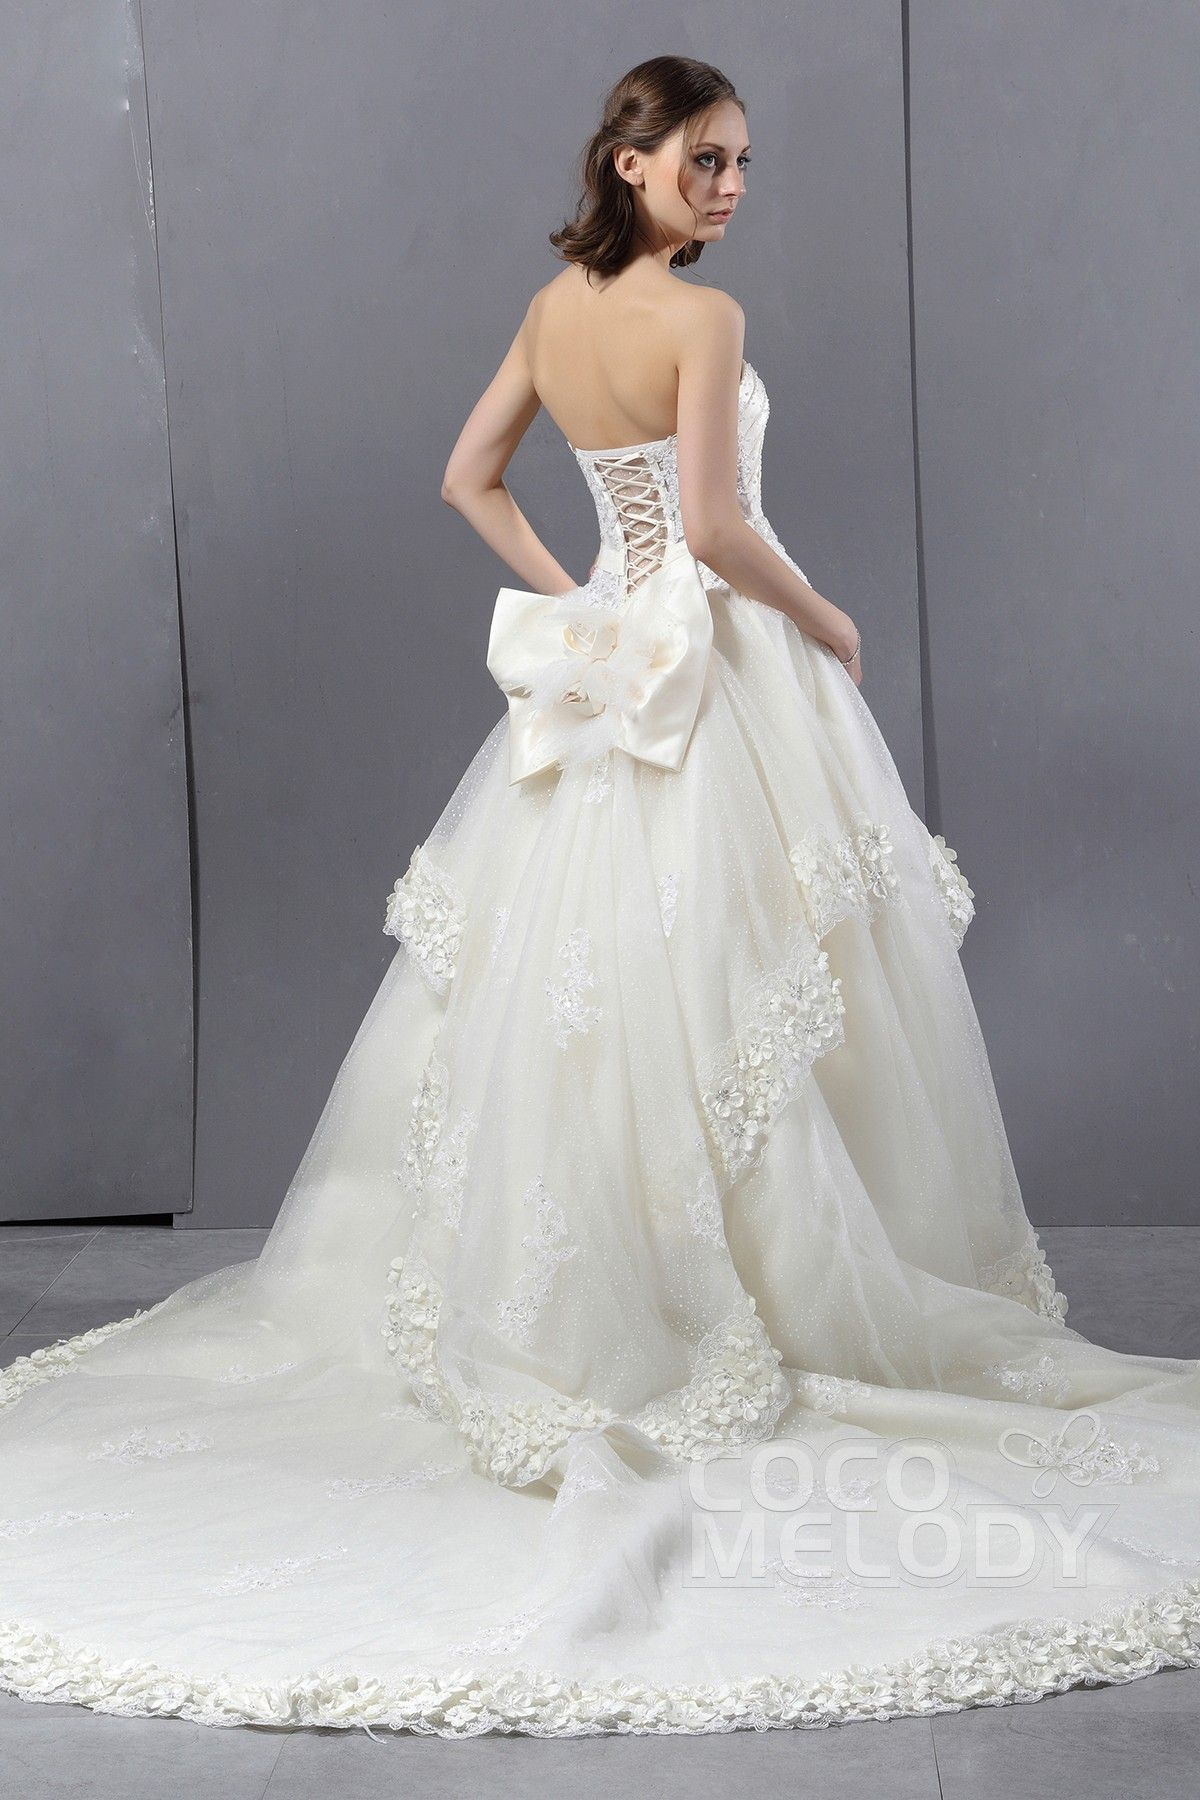 Graceful Ball Gown Sweetheart Chapel Train Tulle Wedding Dress CWLT13007 #weddingdress #cocomelody